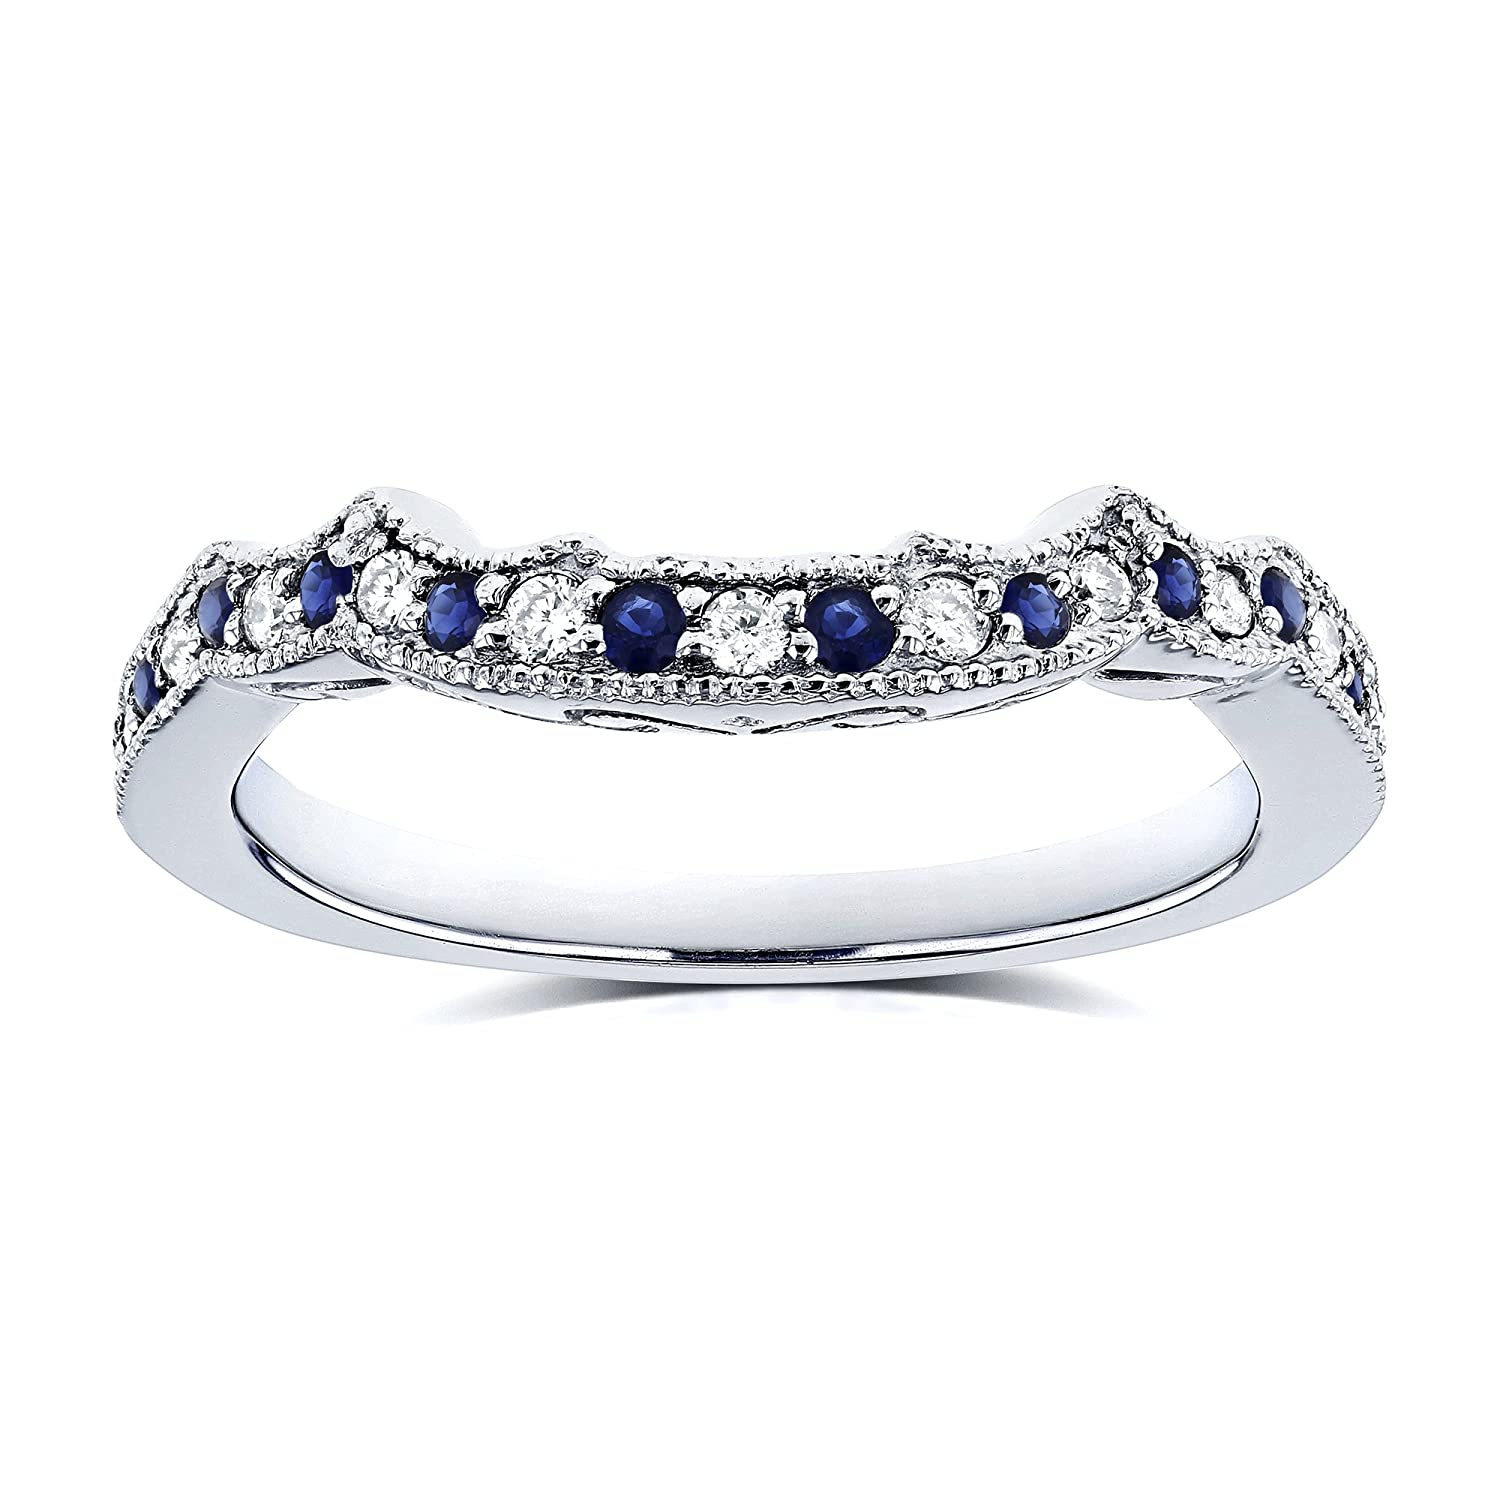 Amazon 15ct Tcw Sapphire And Diamond Contour Wedding Ring In 14k White Gold Jewelry: Curved Wedding Band 0 5ct Diamonds At Reisefeber.org